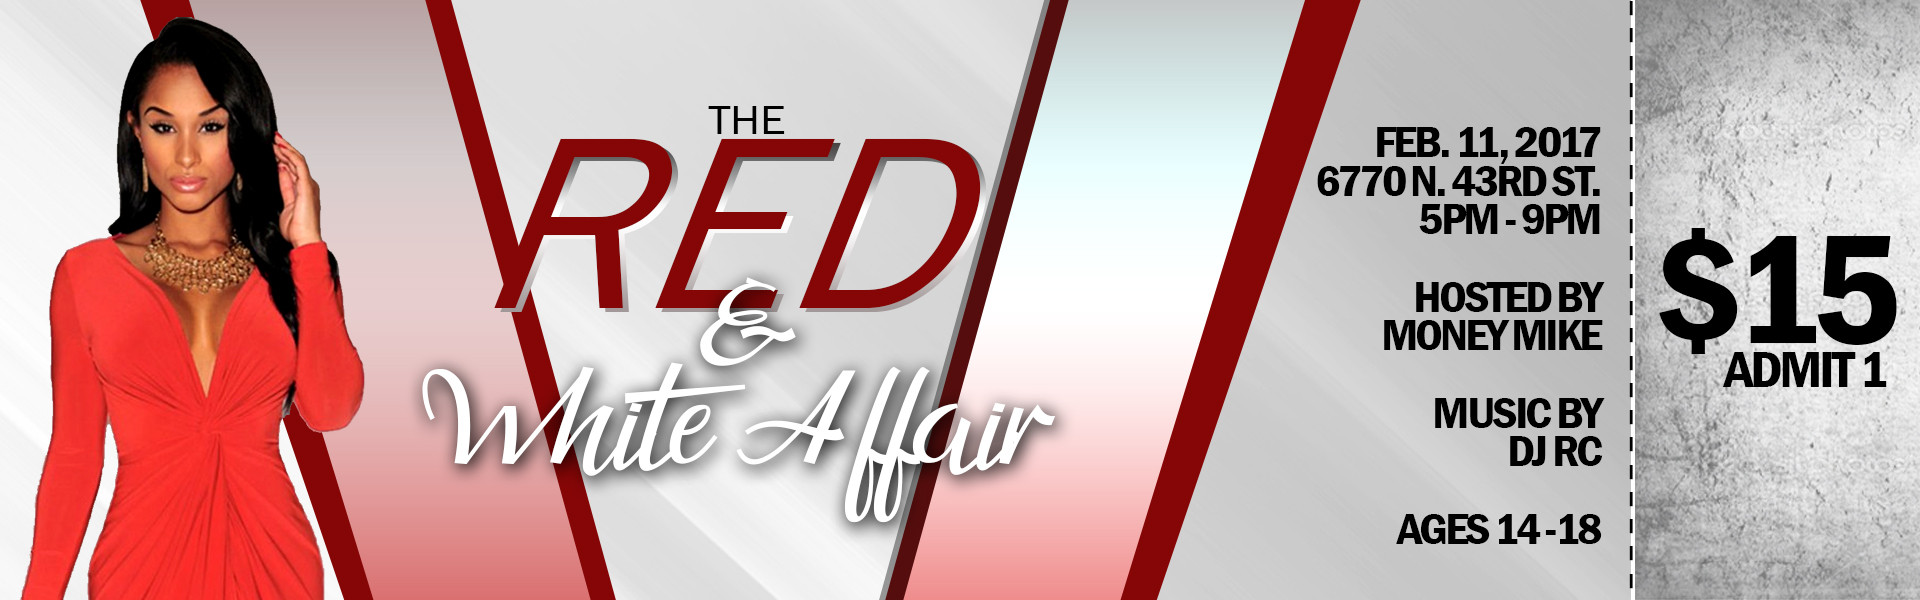 Red and white affair ticket.jpg